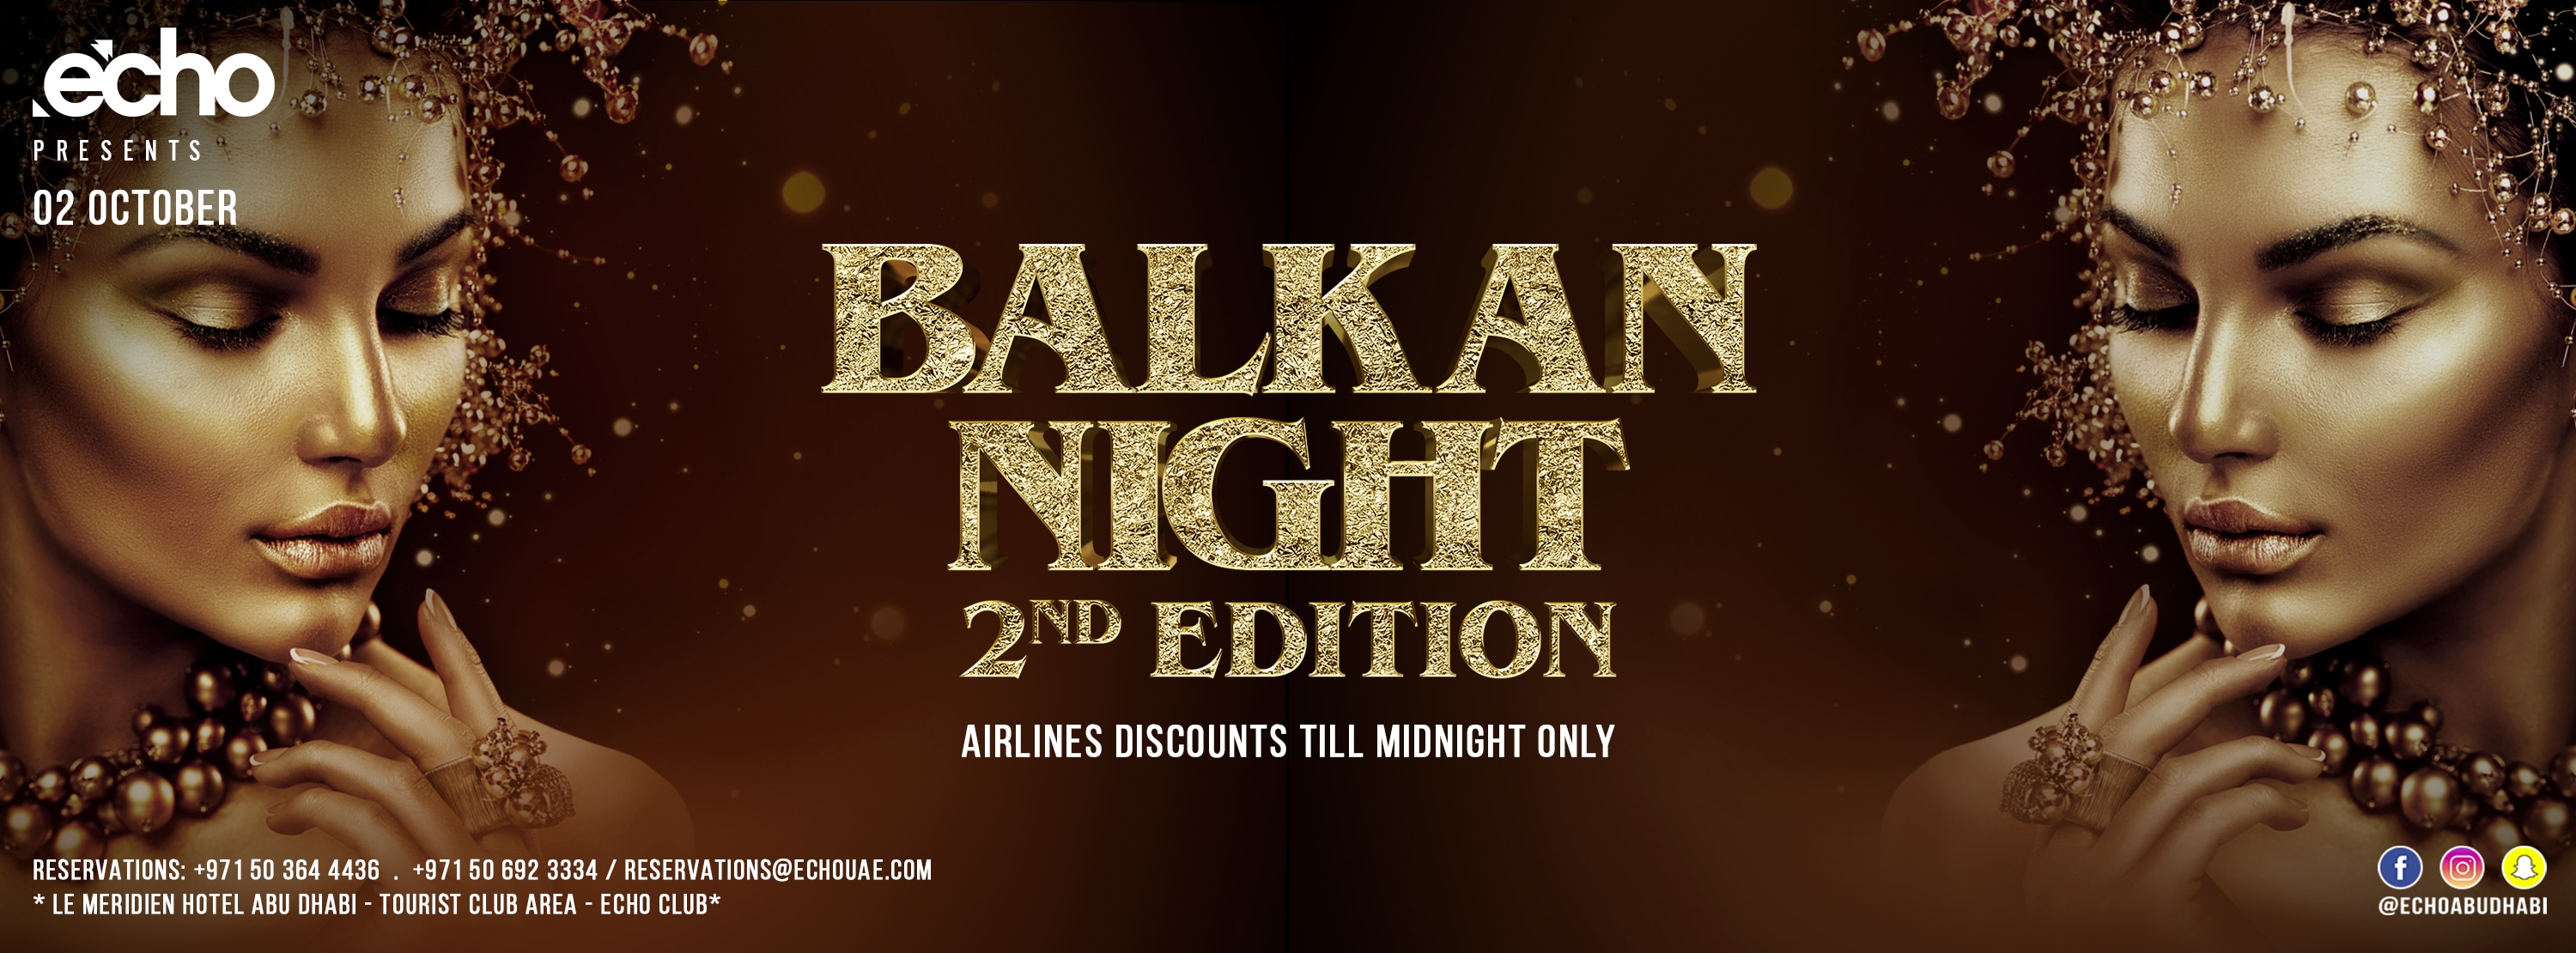 Balkan Night II Edition @ Echo